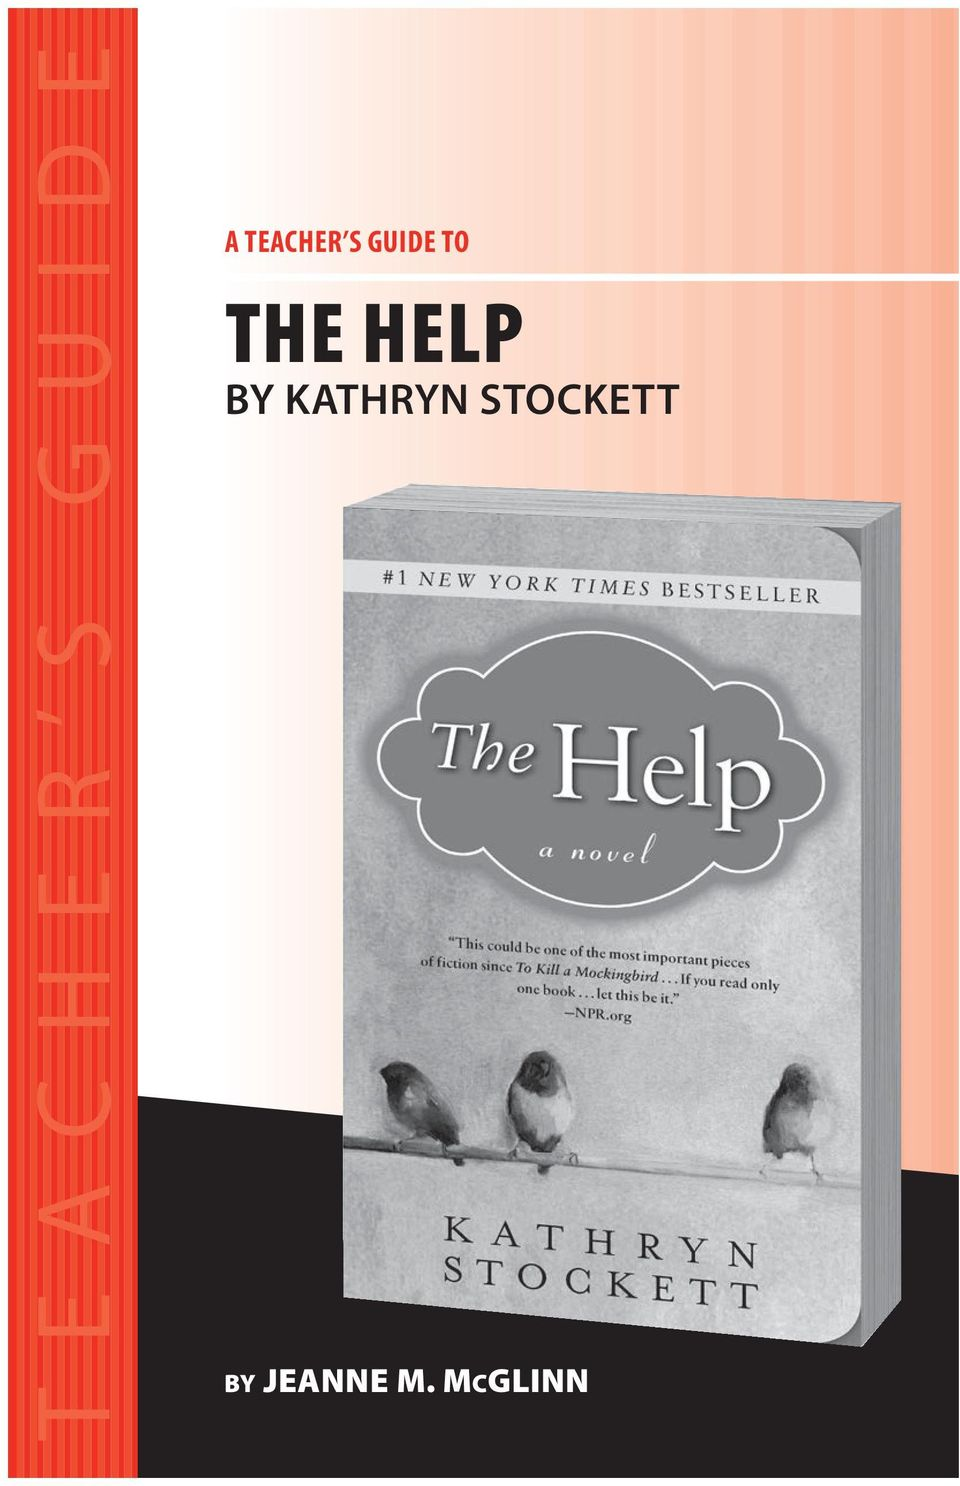 critical essay help kathryn stockett I have homework kathryn stockett the help essay a good way to start an essay order paper research home custom essay five paragraph essay sample in sixth grade critical essay help kathryn stockett research paper outline college admissions application resumethe help study guide.